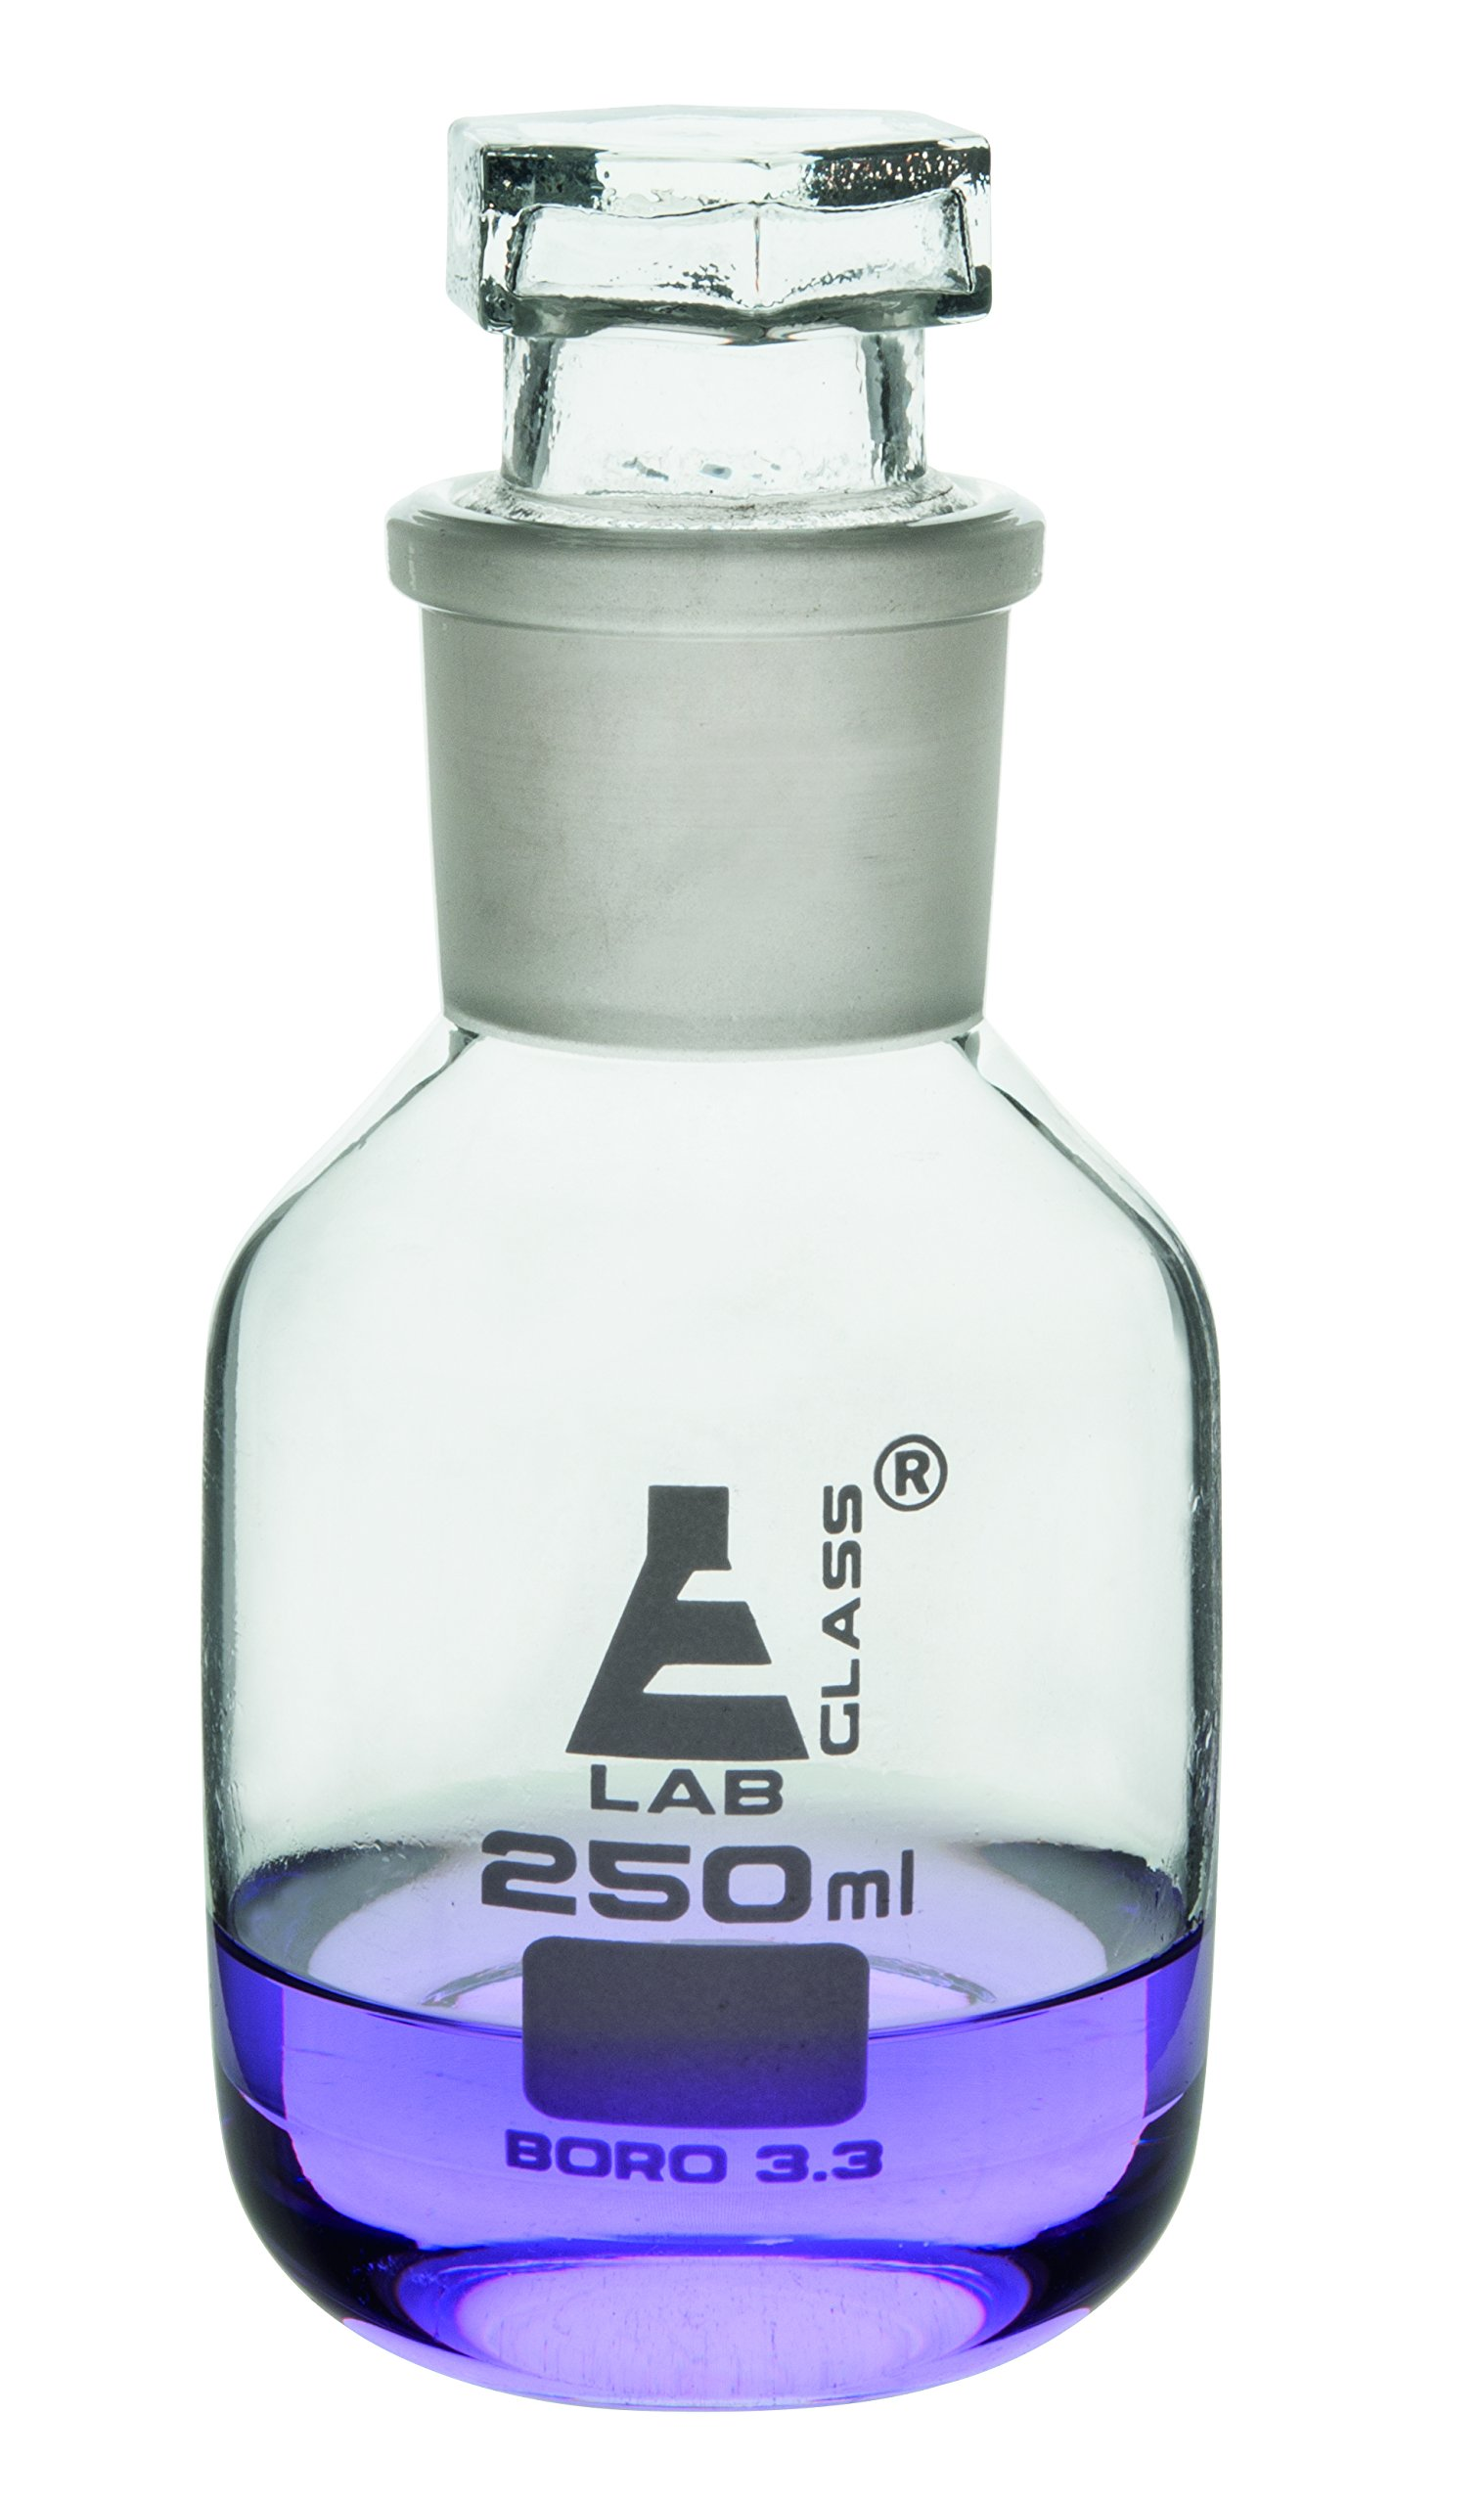 Eisco Labs 250ml Reagent Glass Bottle - Wide mouth with Stopper by EISCO